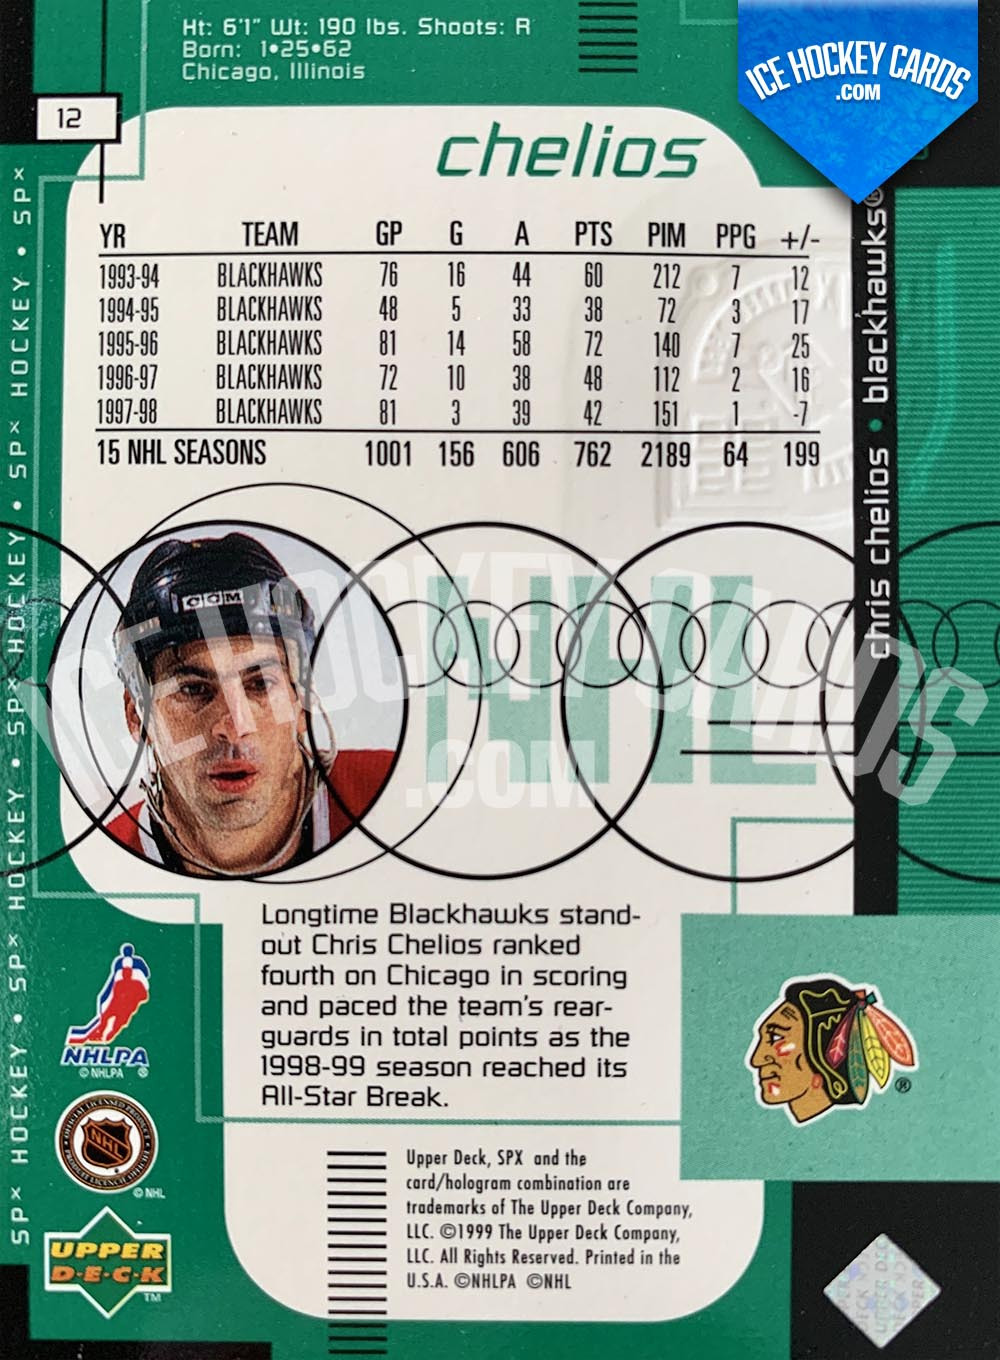 Upper Deck - SPx 1999-20 - Chris Chelios Radiance Card # to 100 back